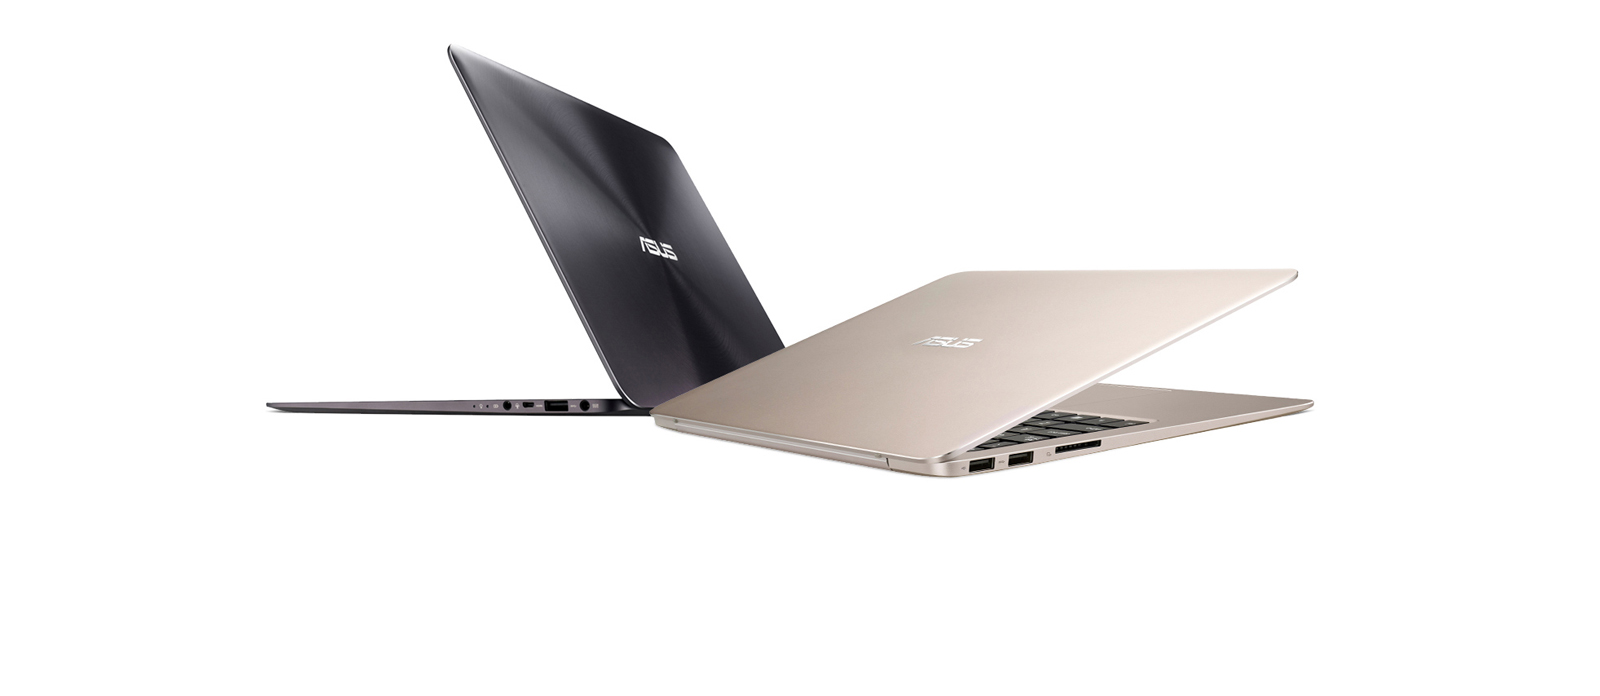 Download Driver: ASUS ZenBook UX305UA Intel Bluetooth